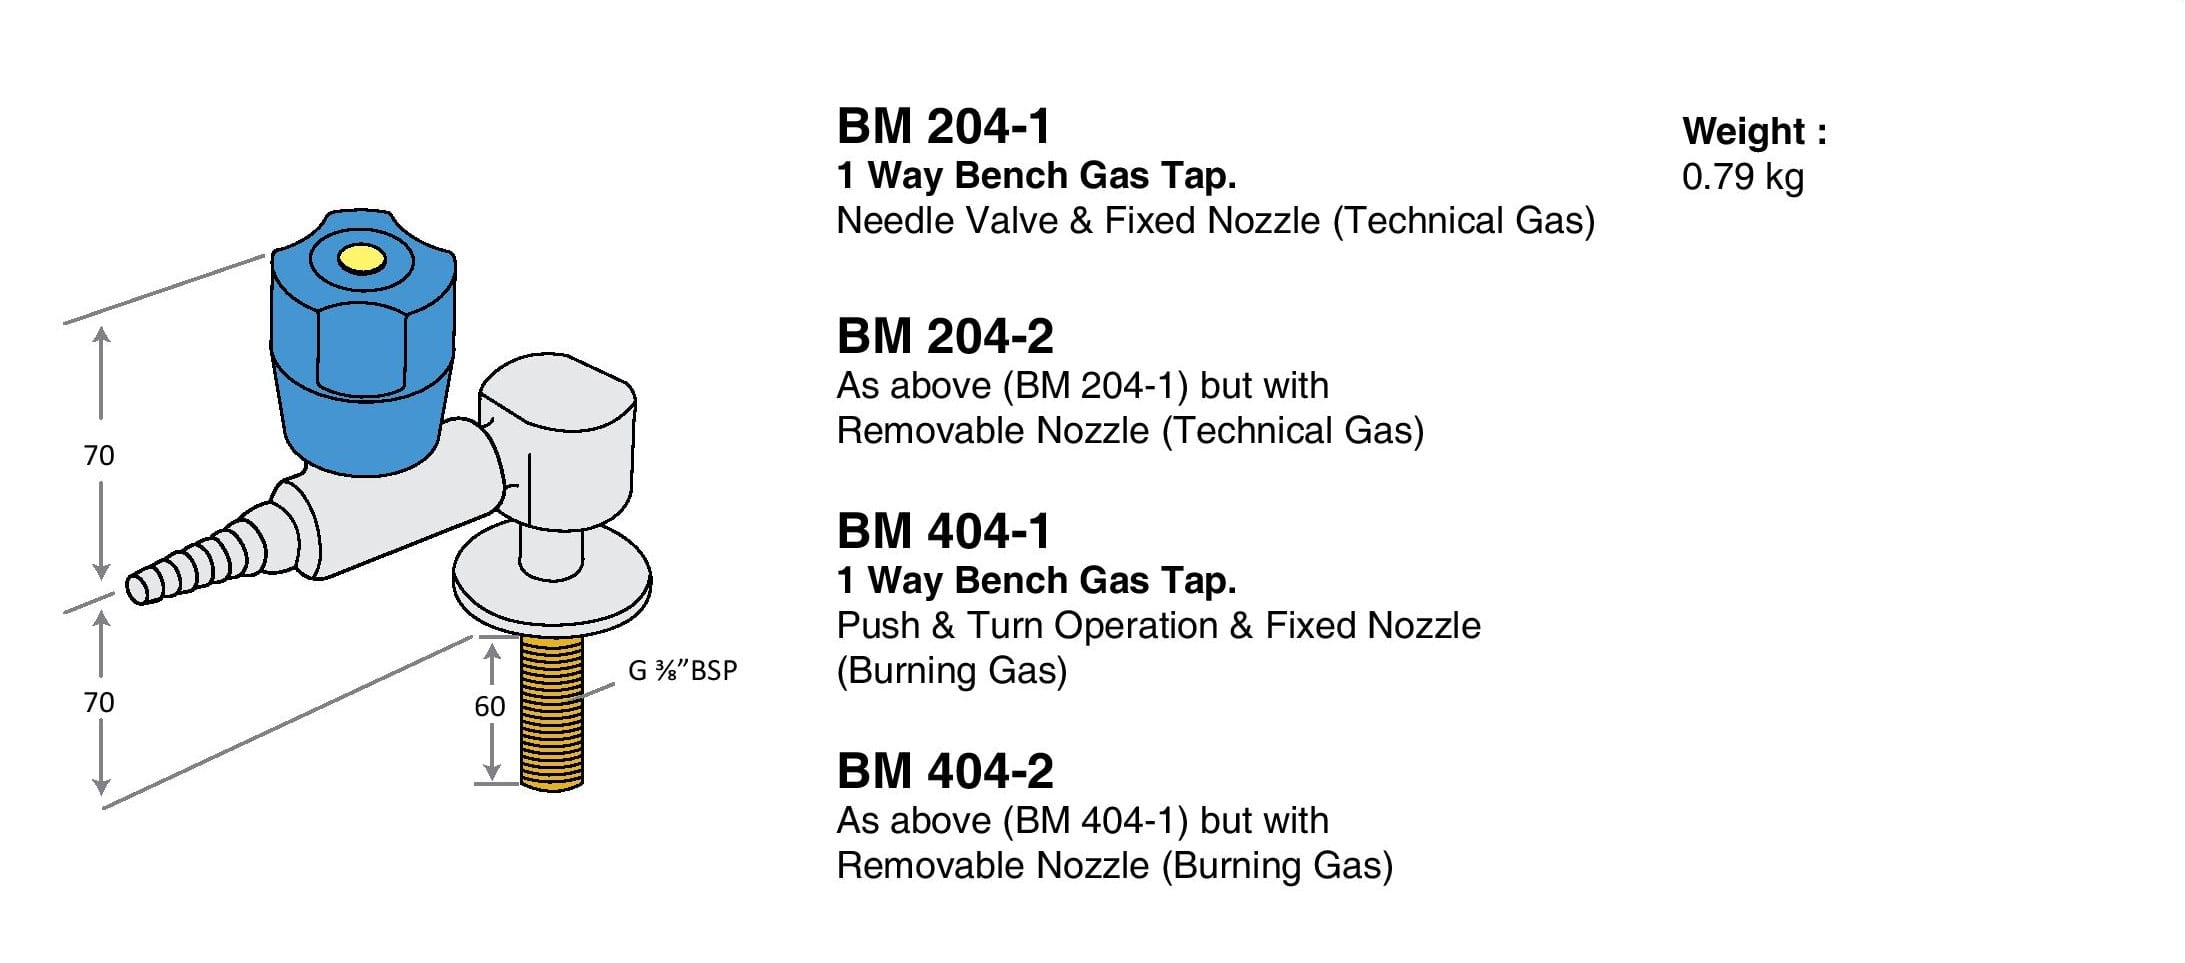 1 Way Standard Bench Gas Tap Drawings